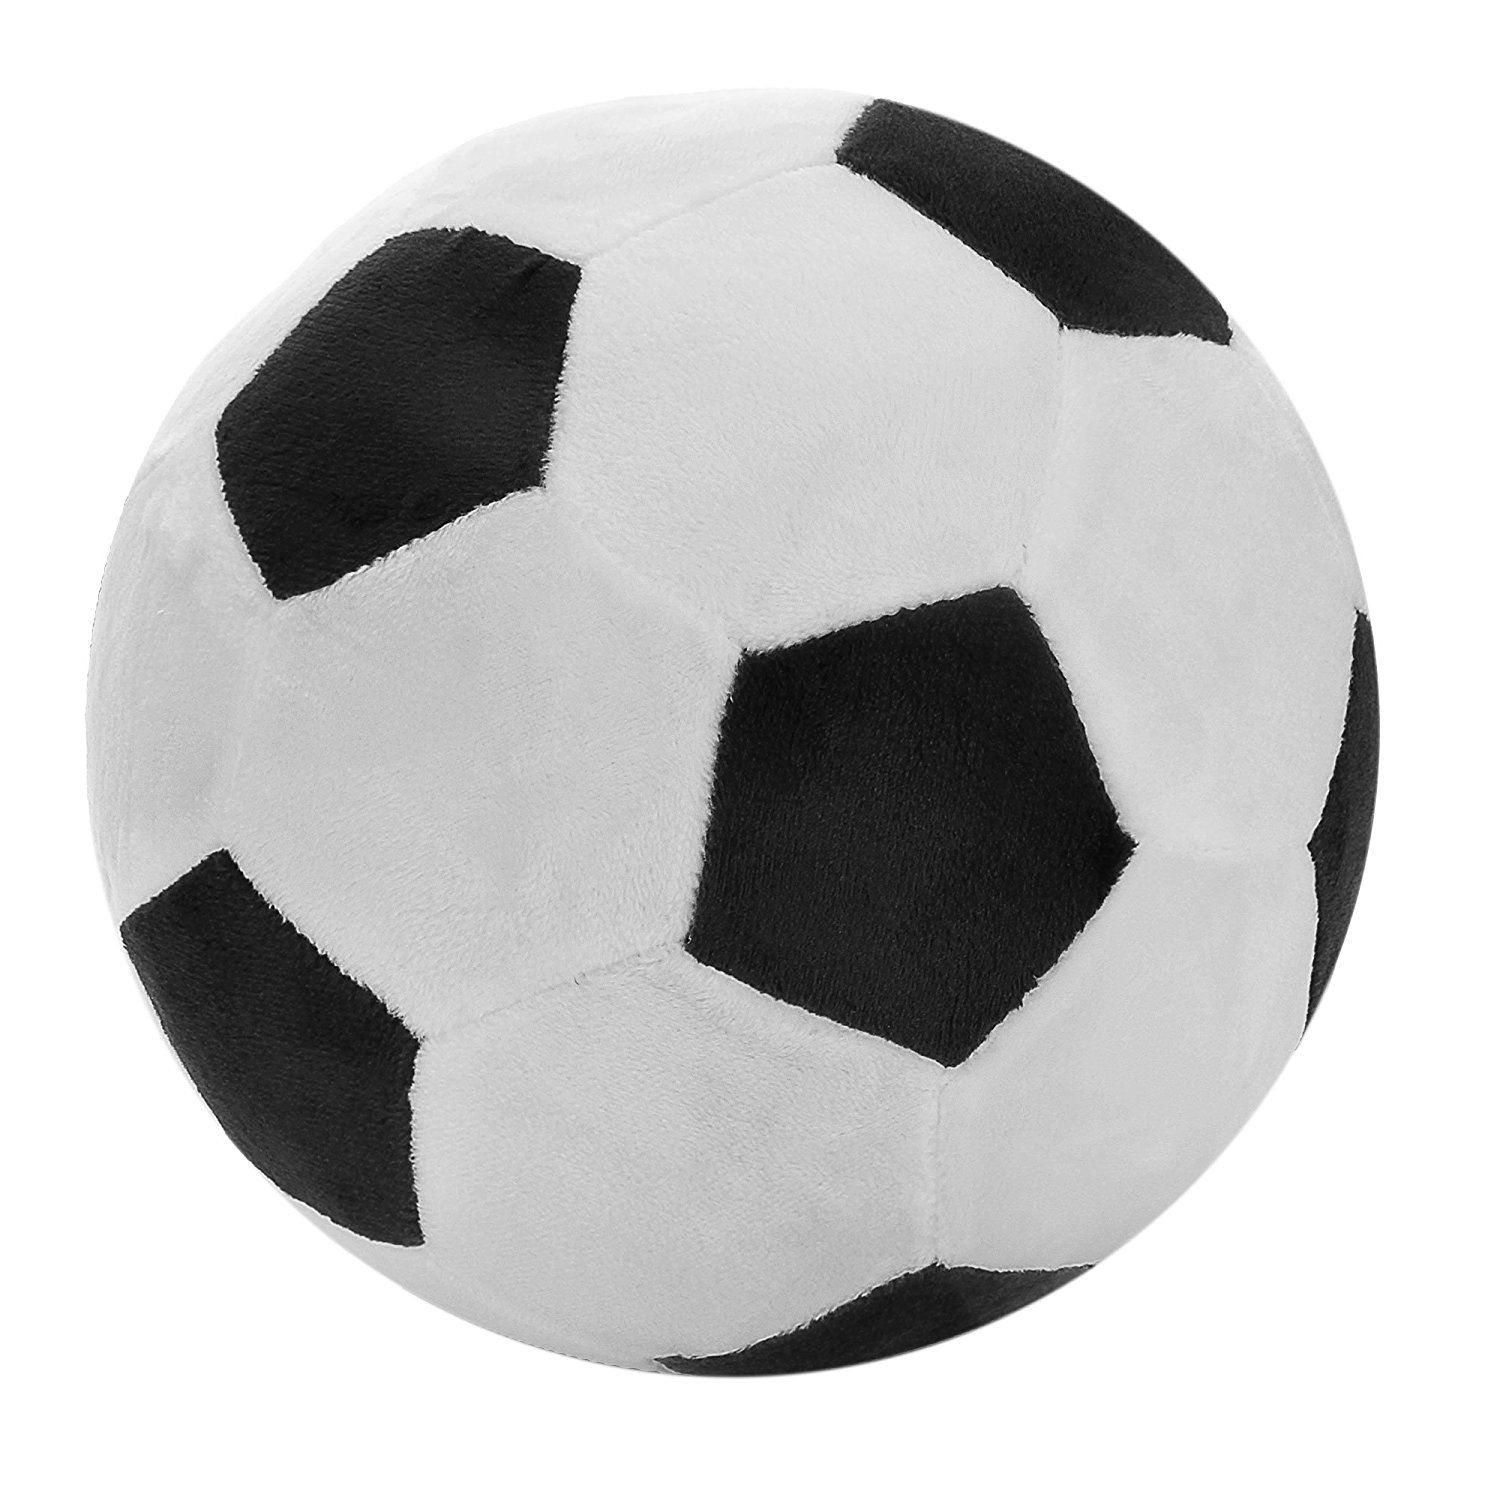 Soccer Sports Ball Throw Pillow Stuffed Soft Plush Toy For Toddler Baby Boys Kids Gift